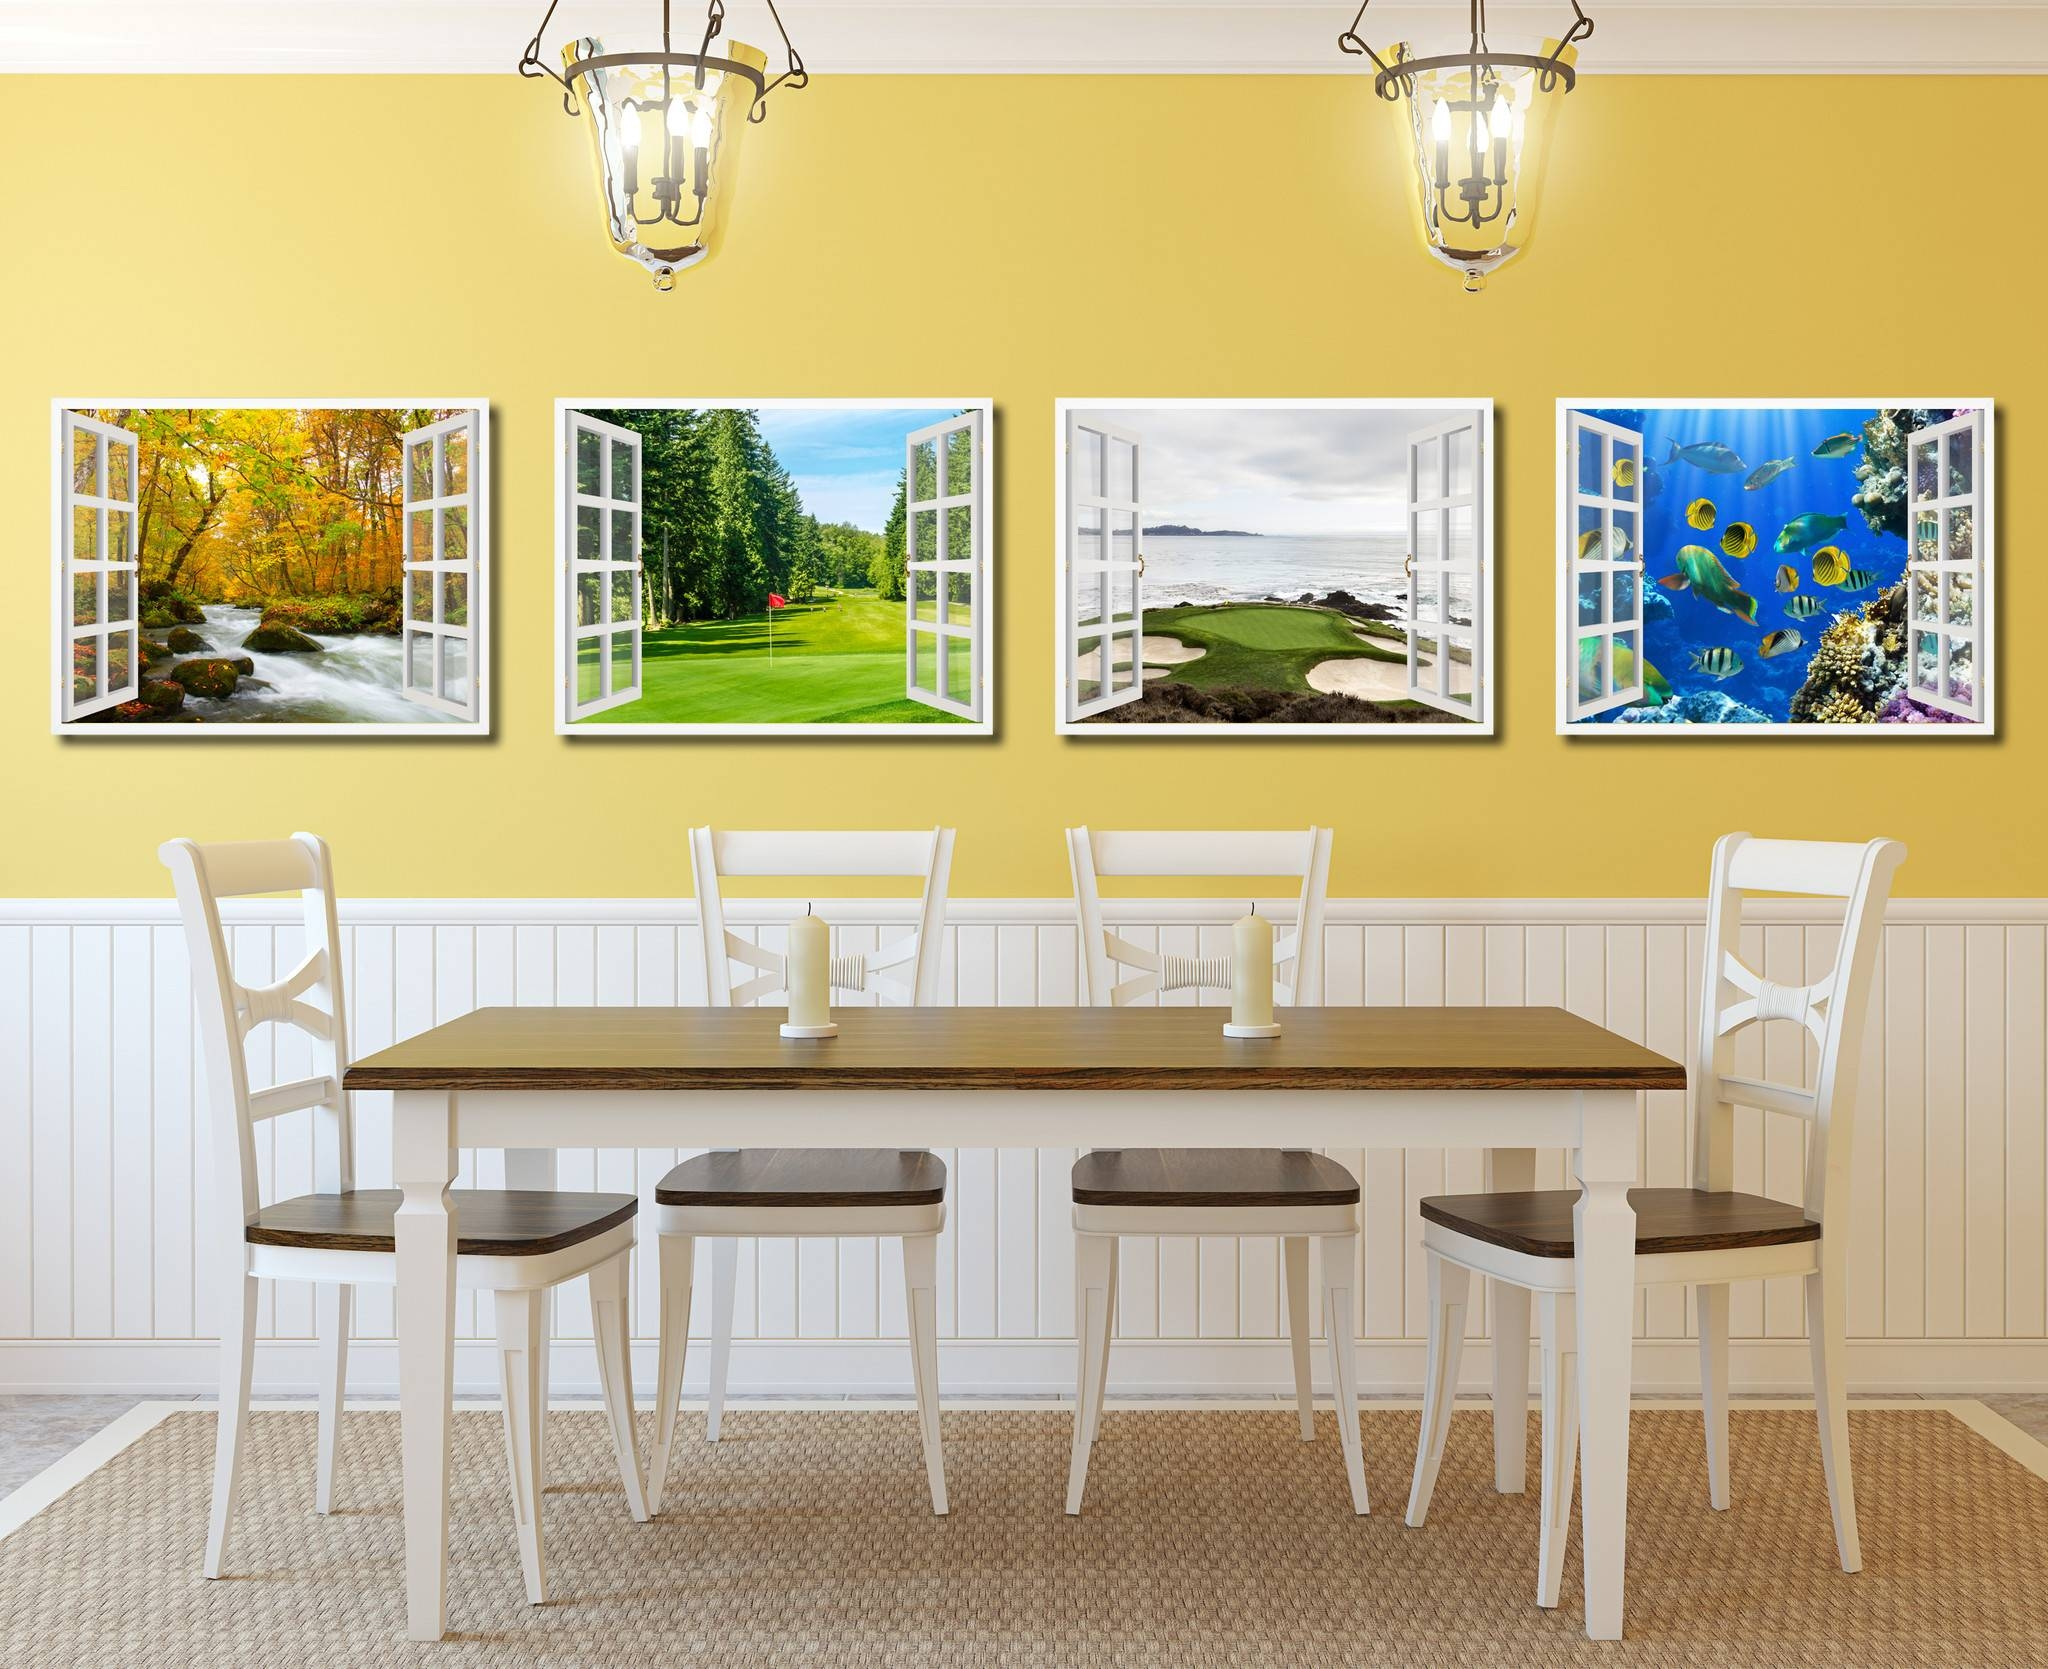 3d Wall Art Vancouver | Wallartideas Within Most Up To Date Vancouver 3d Wall Art (View 3 of 20)